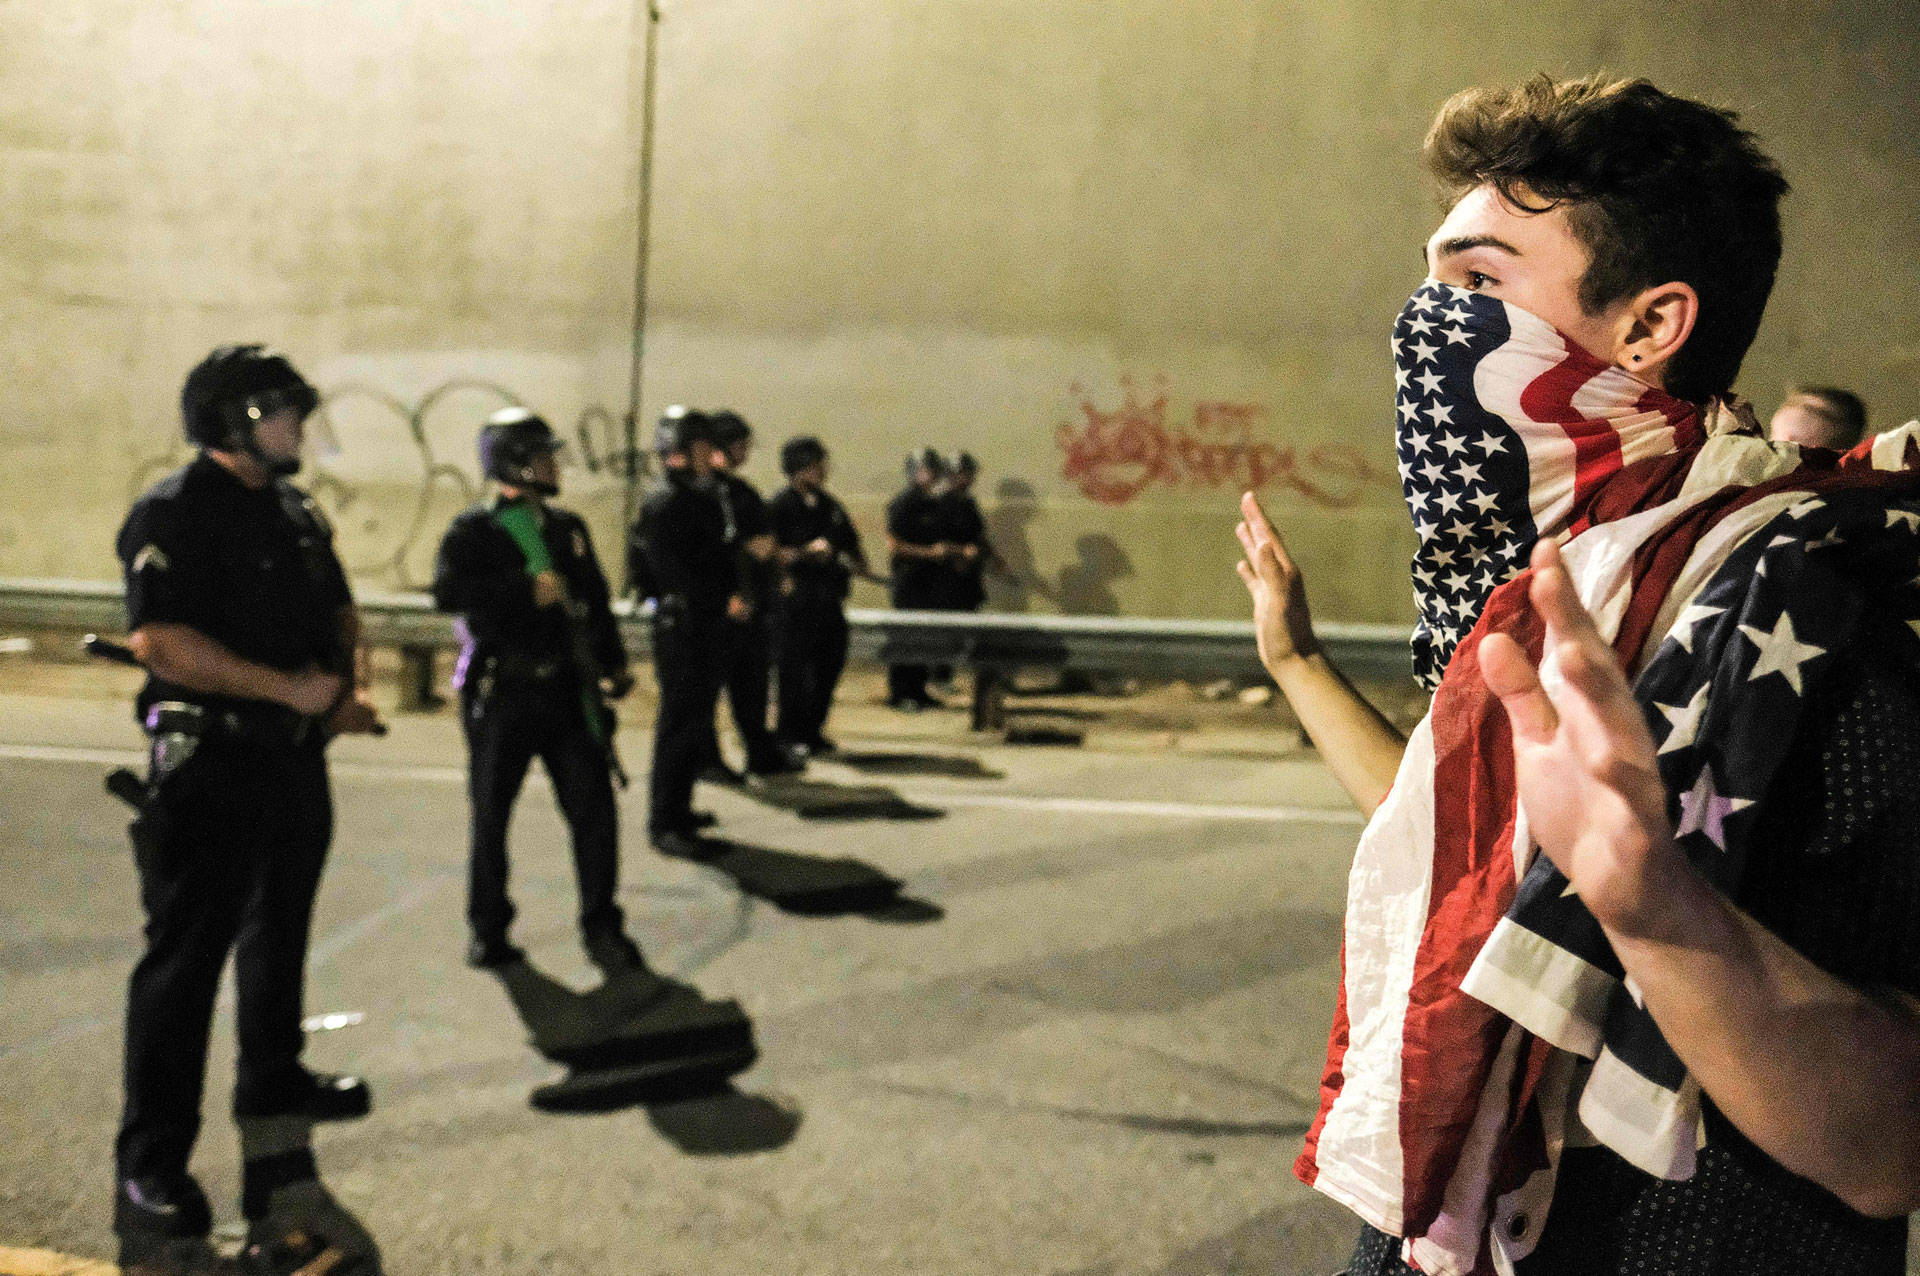 A protester (R) confronts police as protesters shut down the 101 Freeway following a rally one day after Donald Trump's presidential election victory in Los Angeles, late on November 9, 2016.  RINGO CHIU/AFP/Getty Images